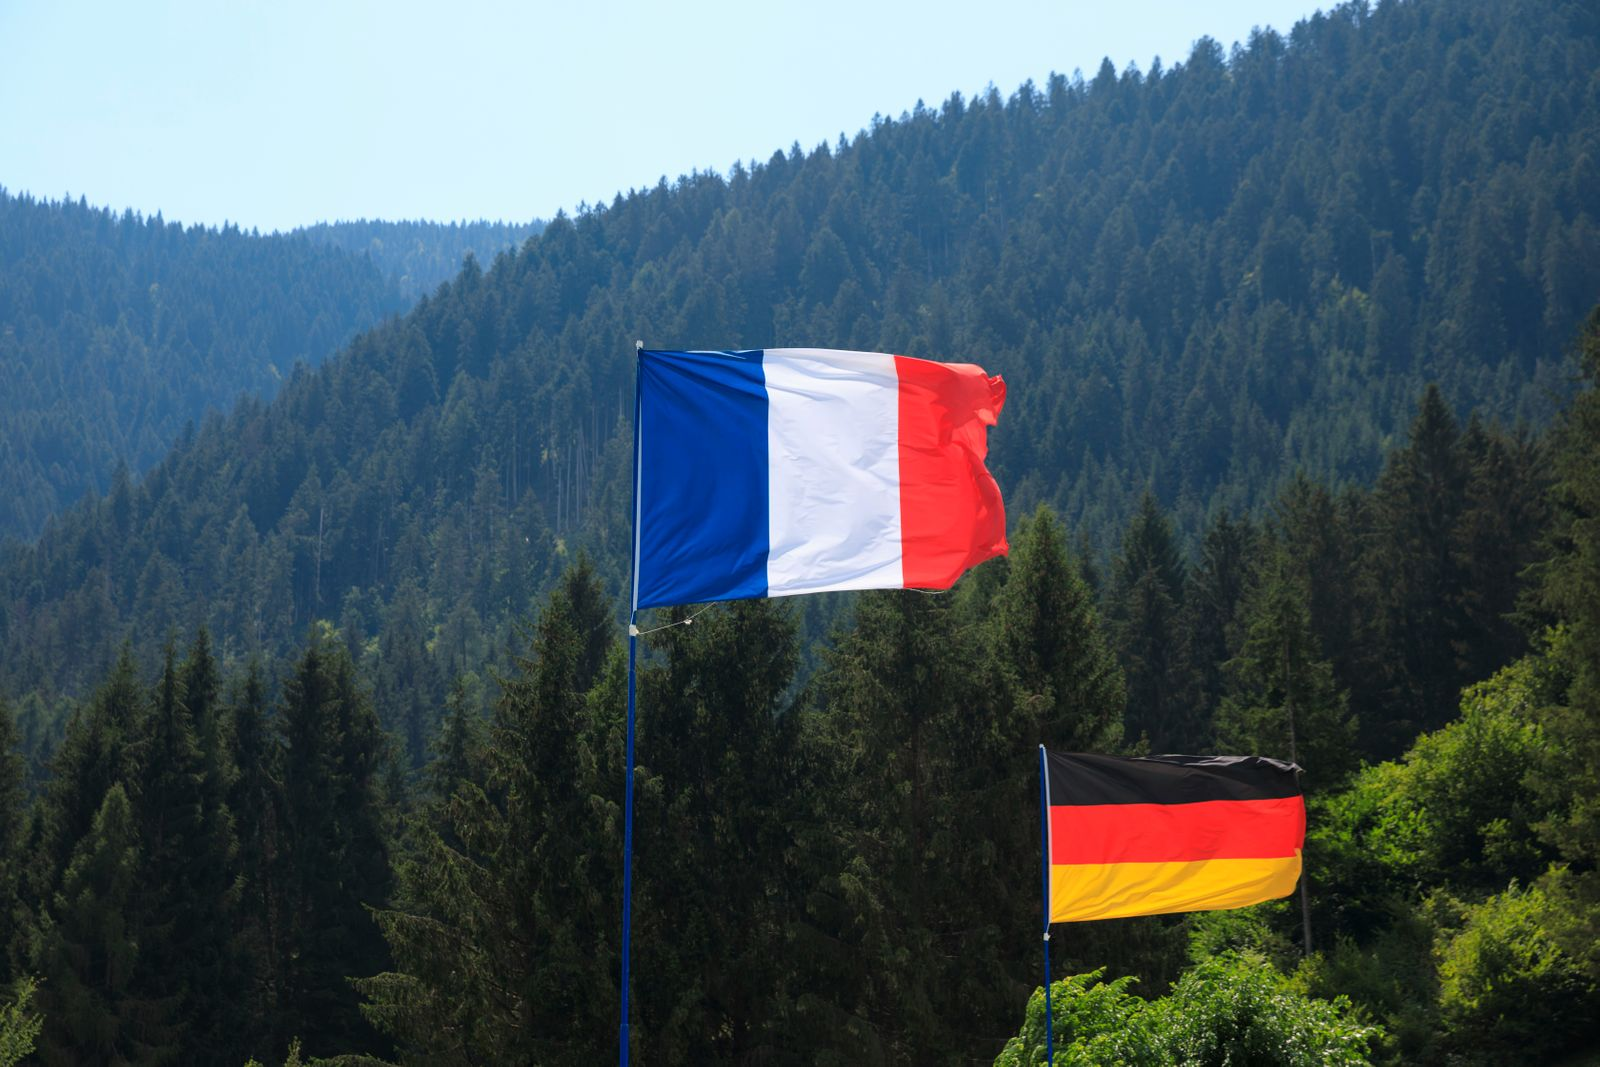 French flag and German flag fluttering in the wind.